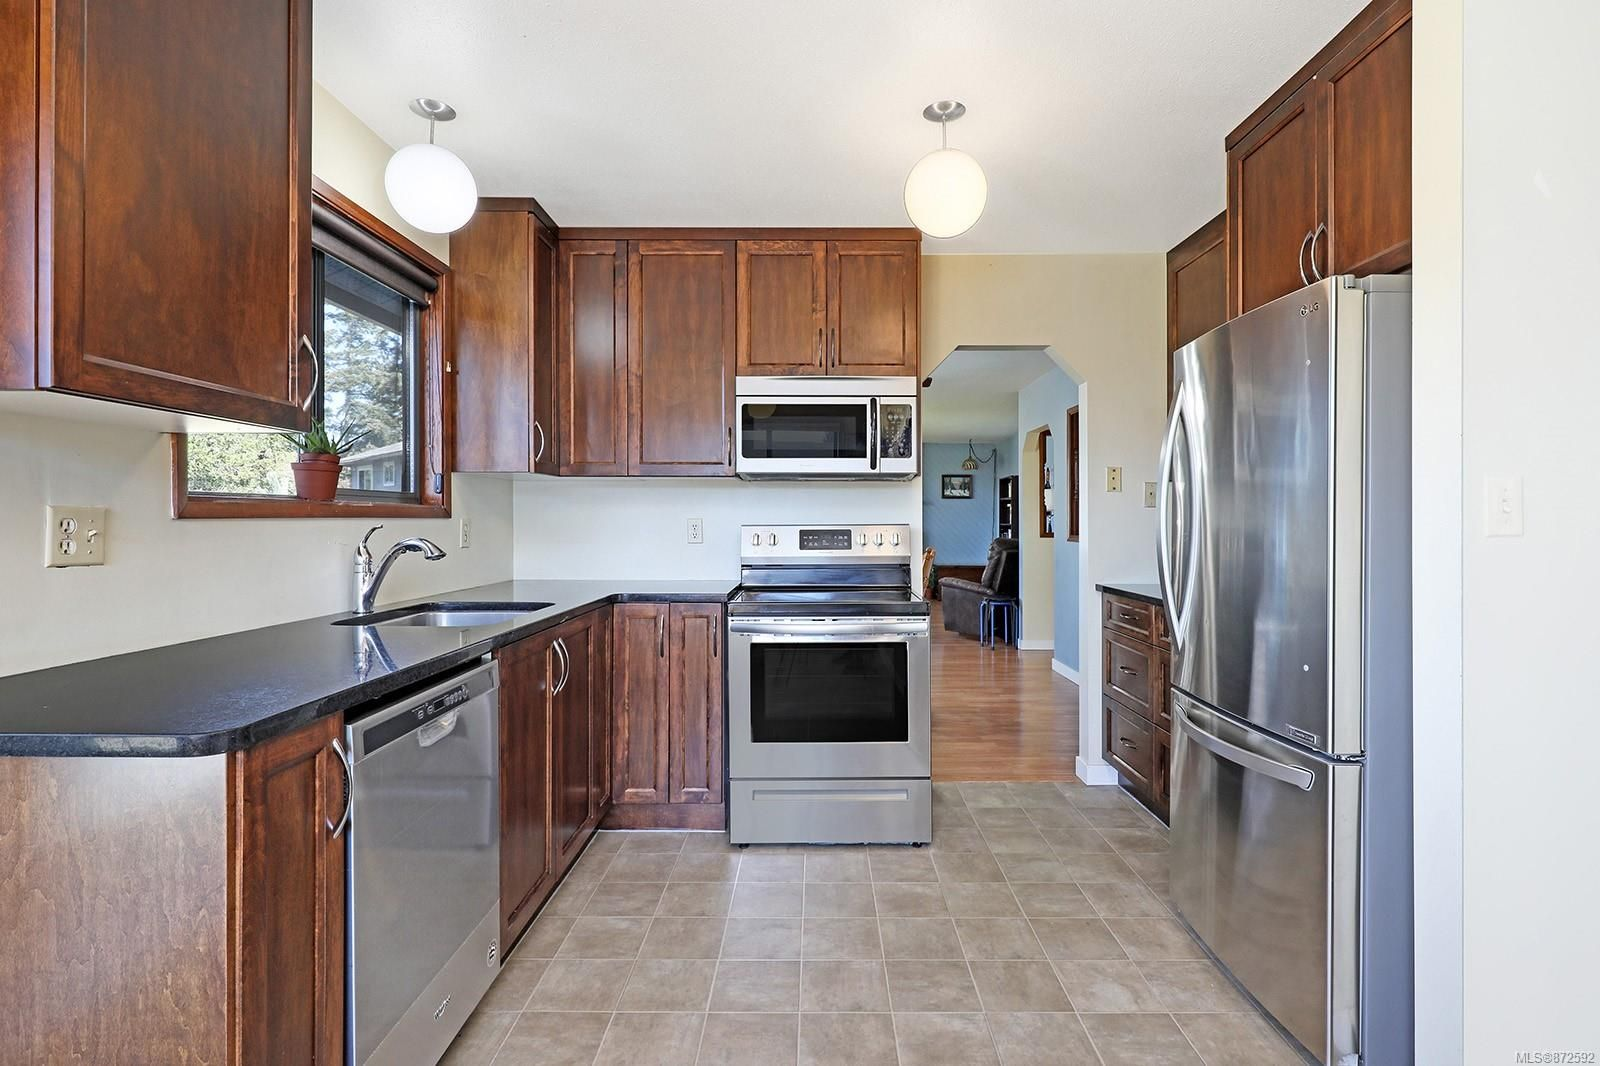 Photo 11: Photos: 1626 Valley Cres in : CV Courtenay East House for sale (Comox Valley)  : MLS®# 872592